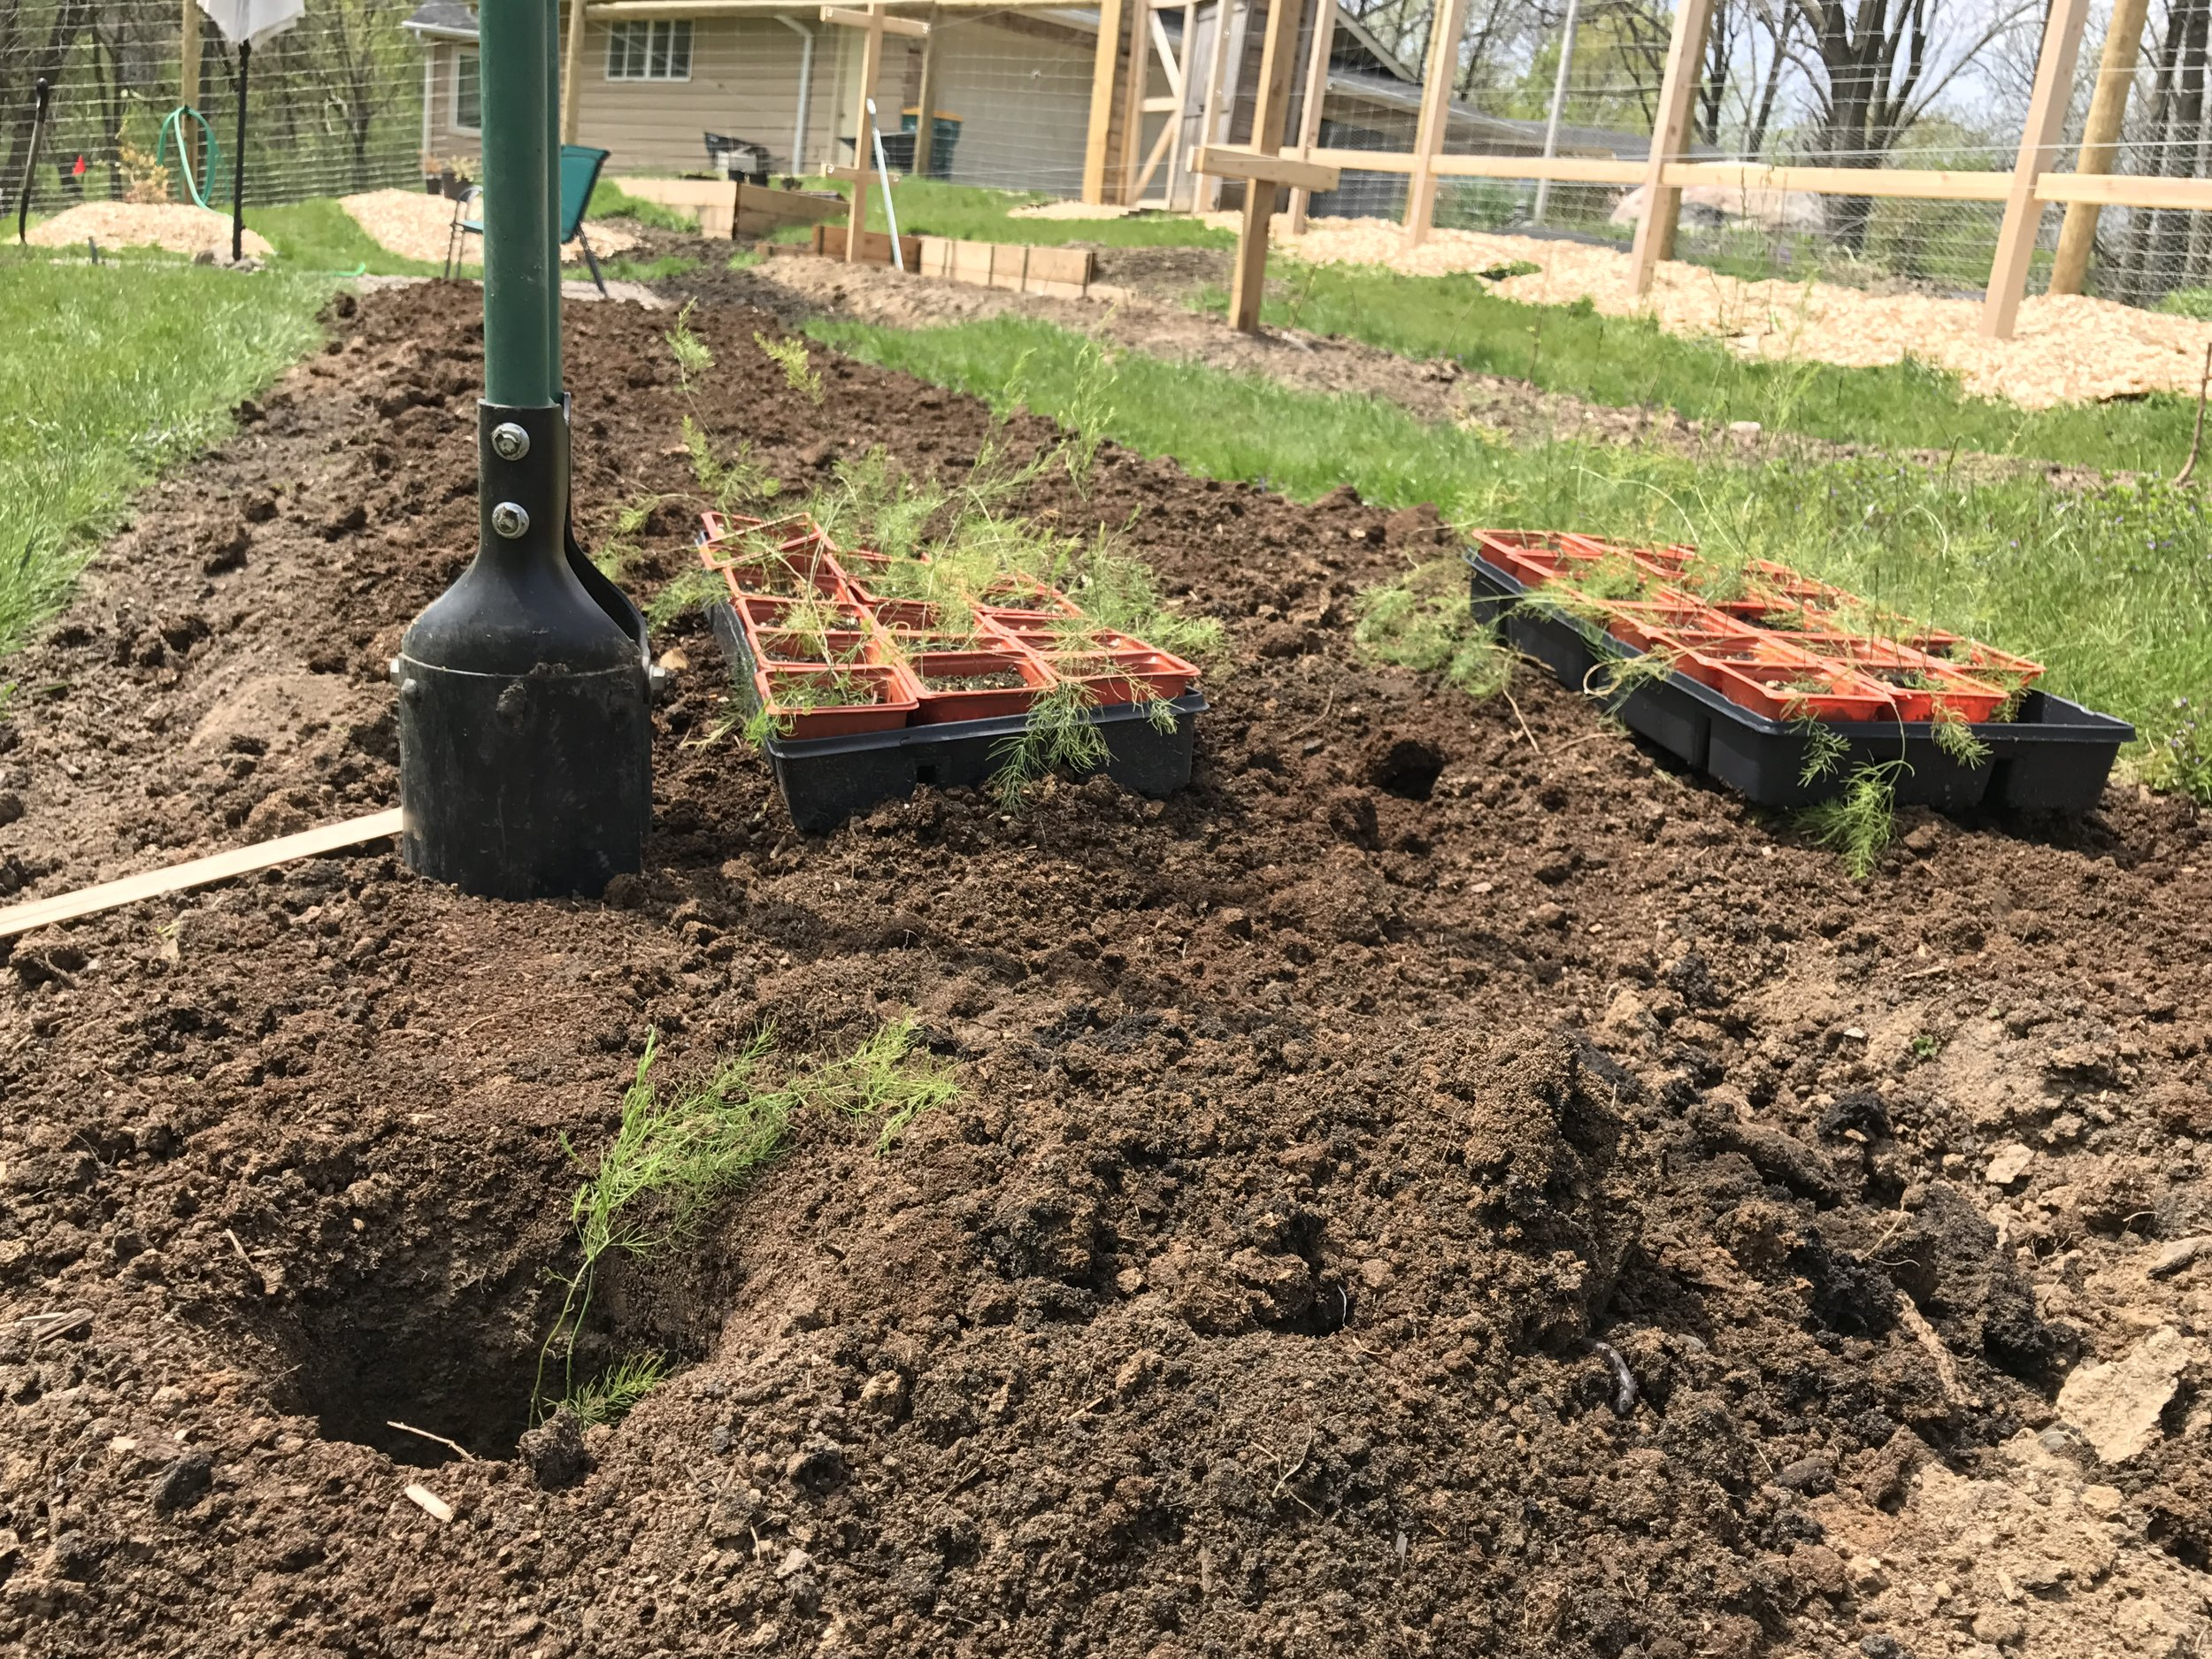 Such a simple method and much less digging than a trench. Transplanting asparagus seedlings is easy, made easier by this post hole digger method we followed after reading about it in  The New Organic Grower .